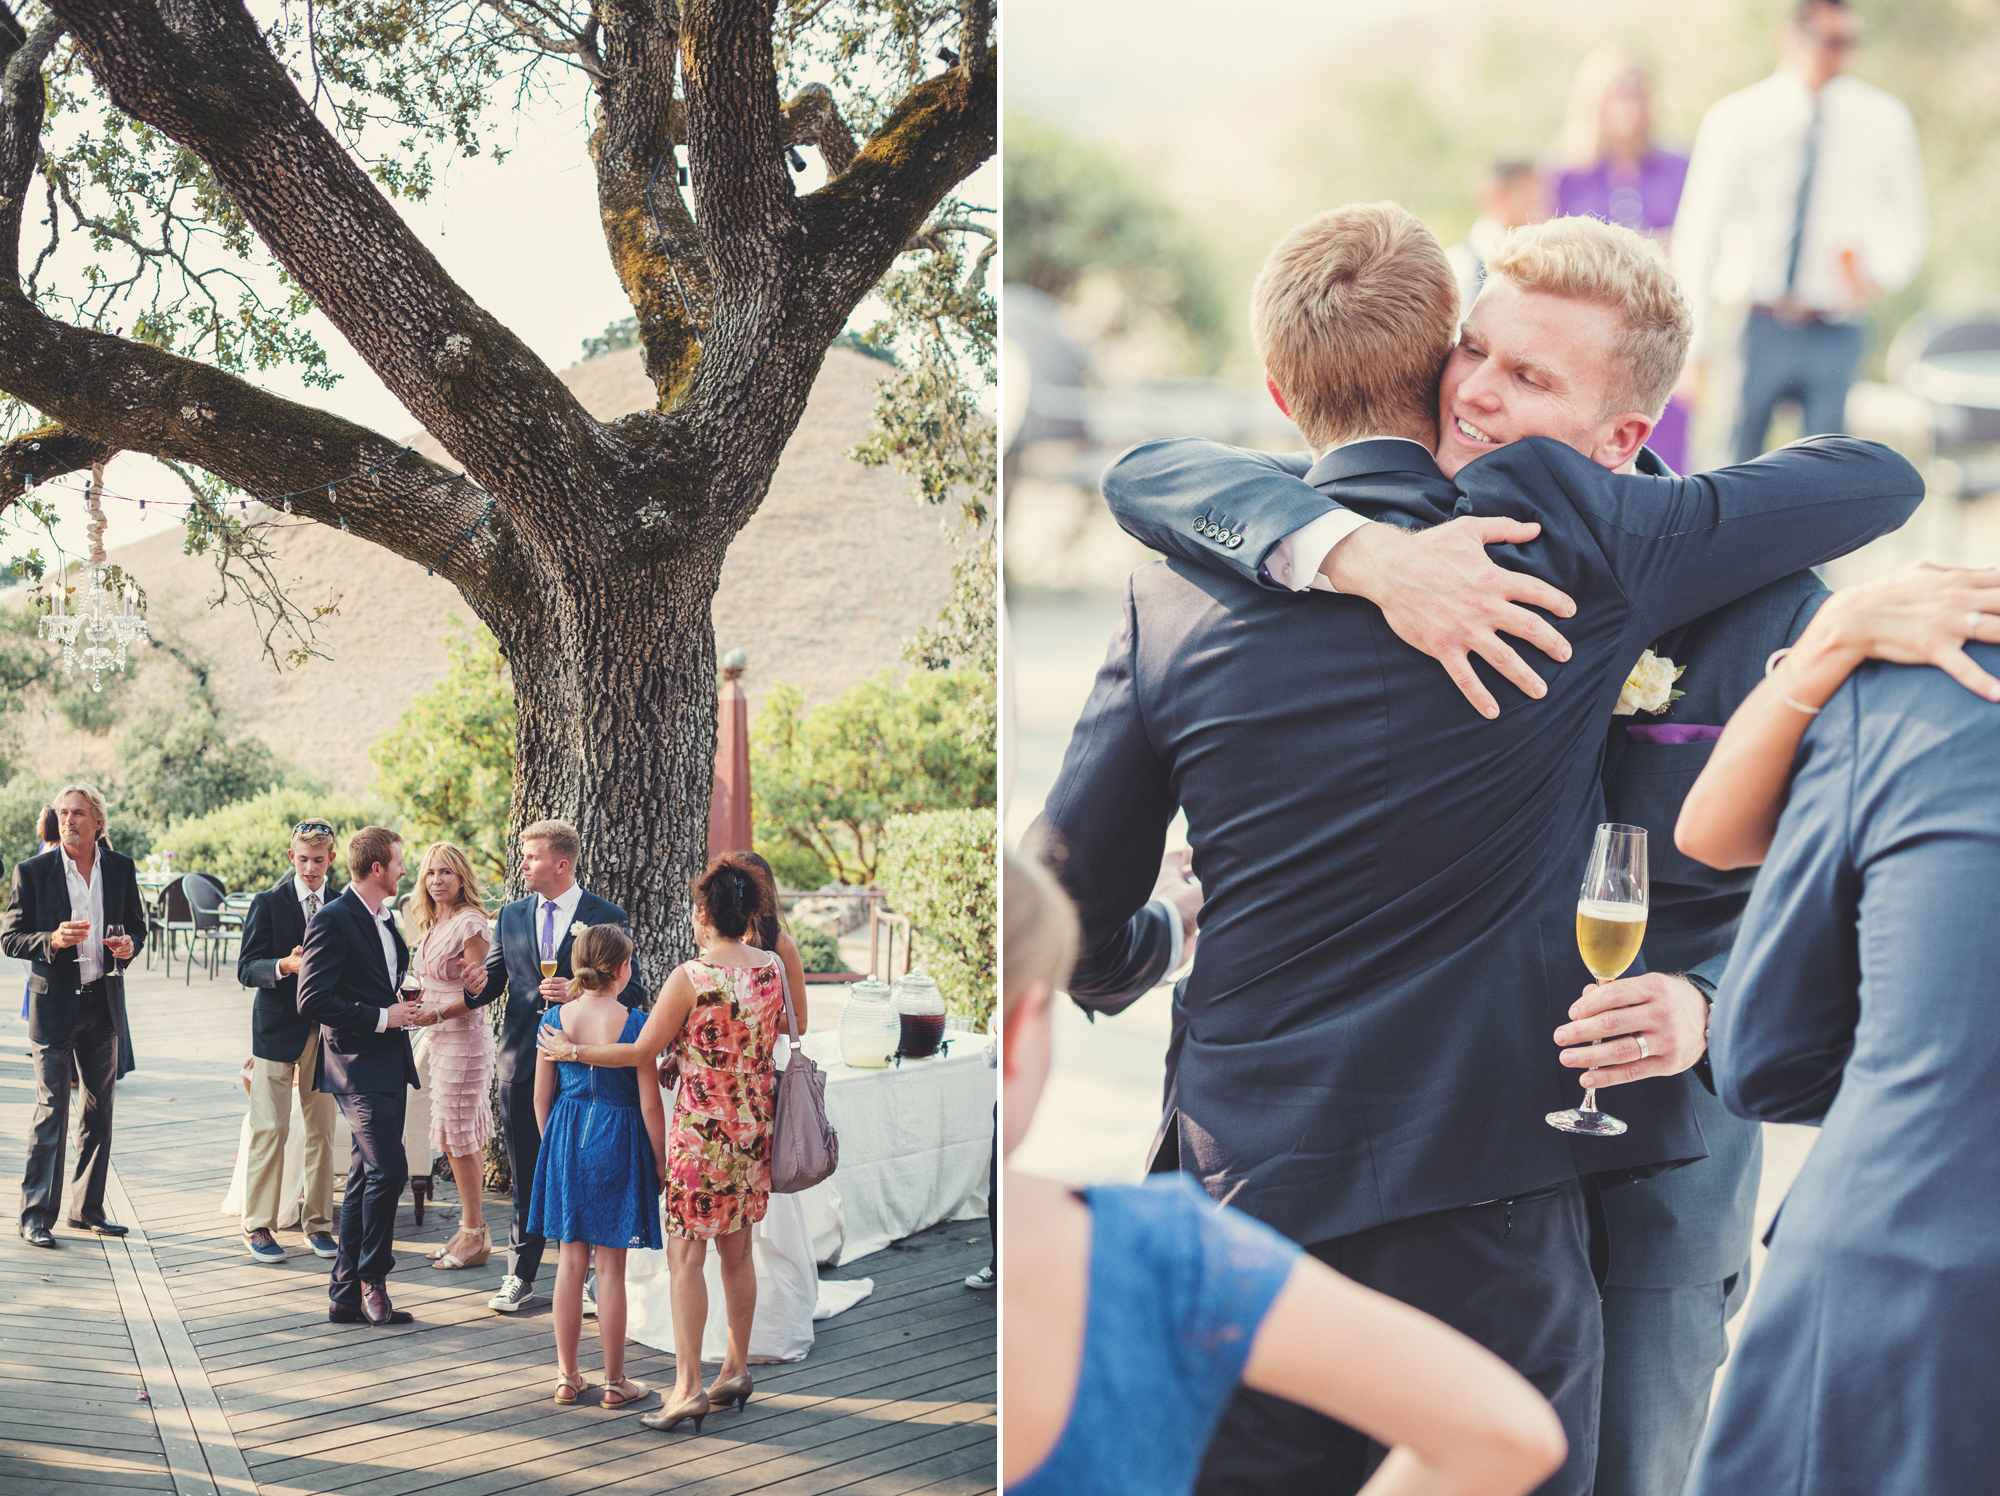 Paradise Ridge winery wedding @Anne-Claire Brun-0070